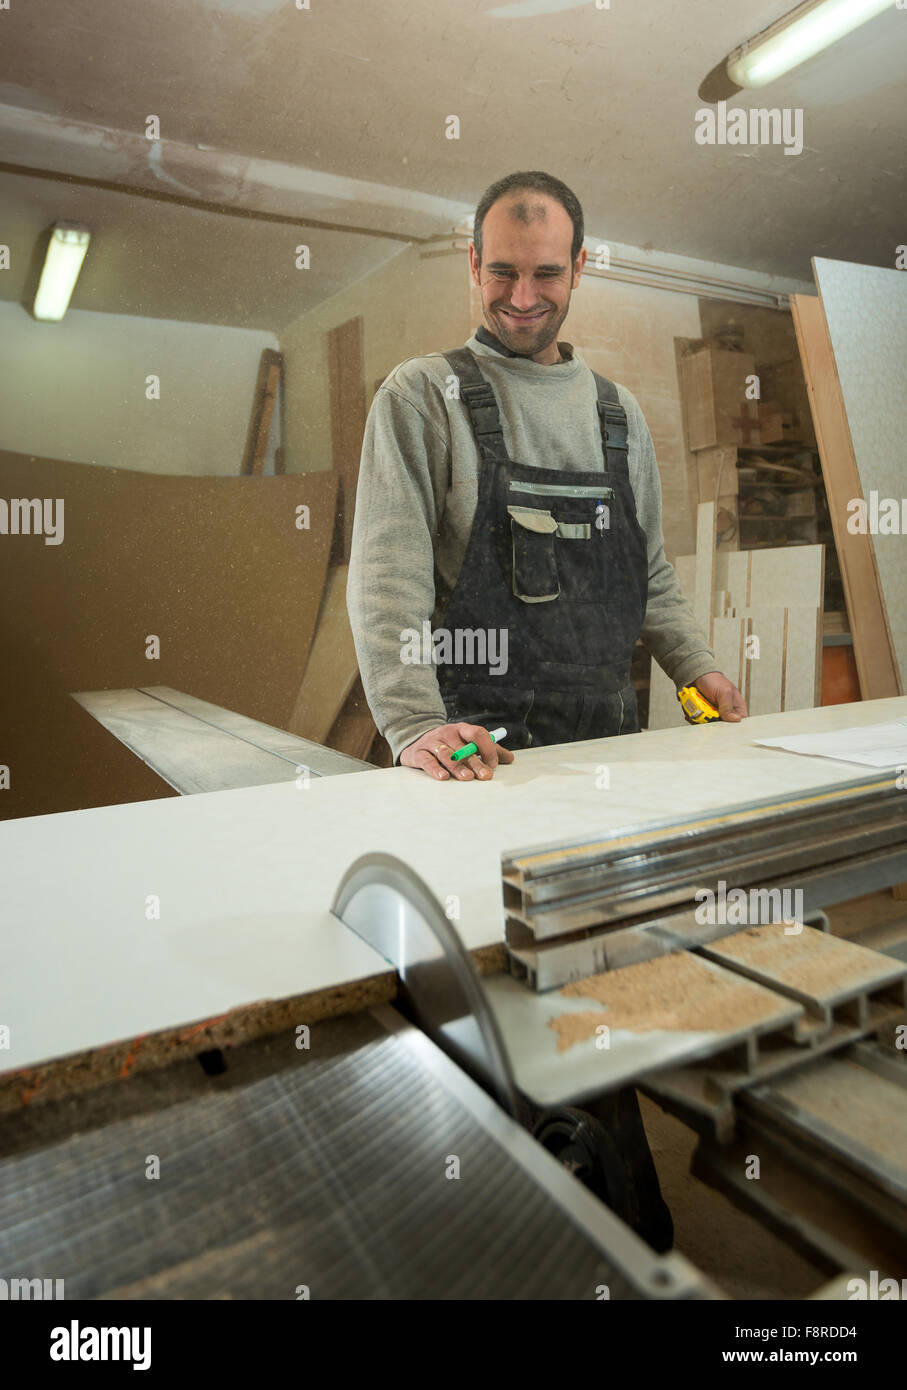 Carpentry Carpenter Woodworker Woodworking Wooden: Saf Stock Photos & Saf Stock Images